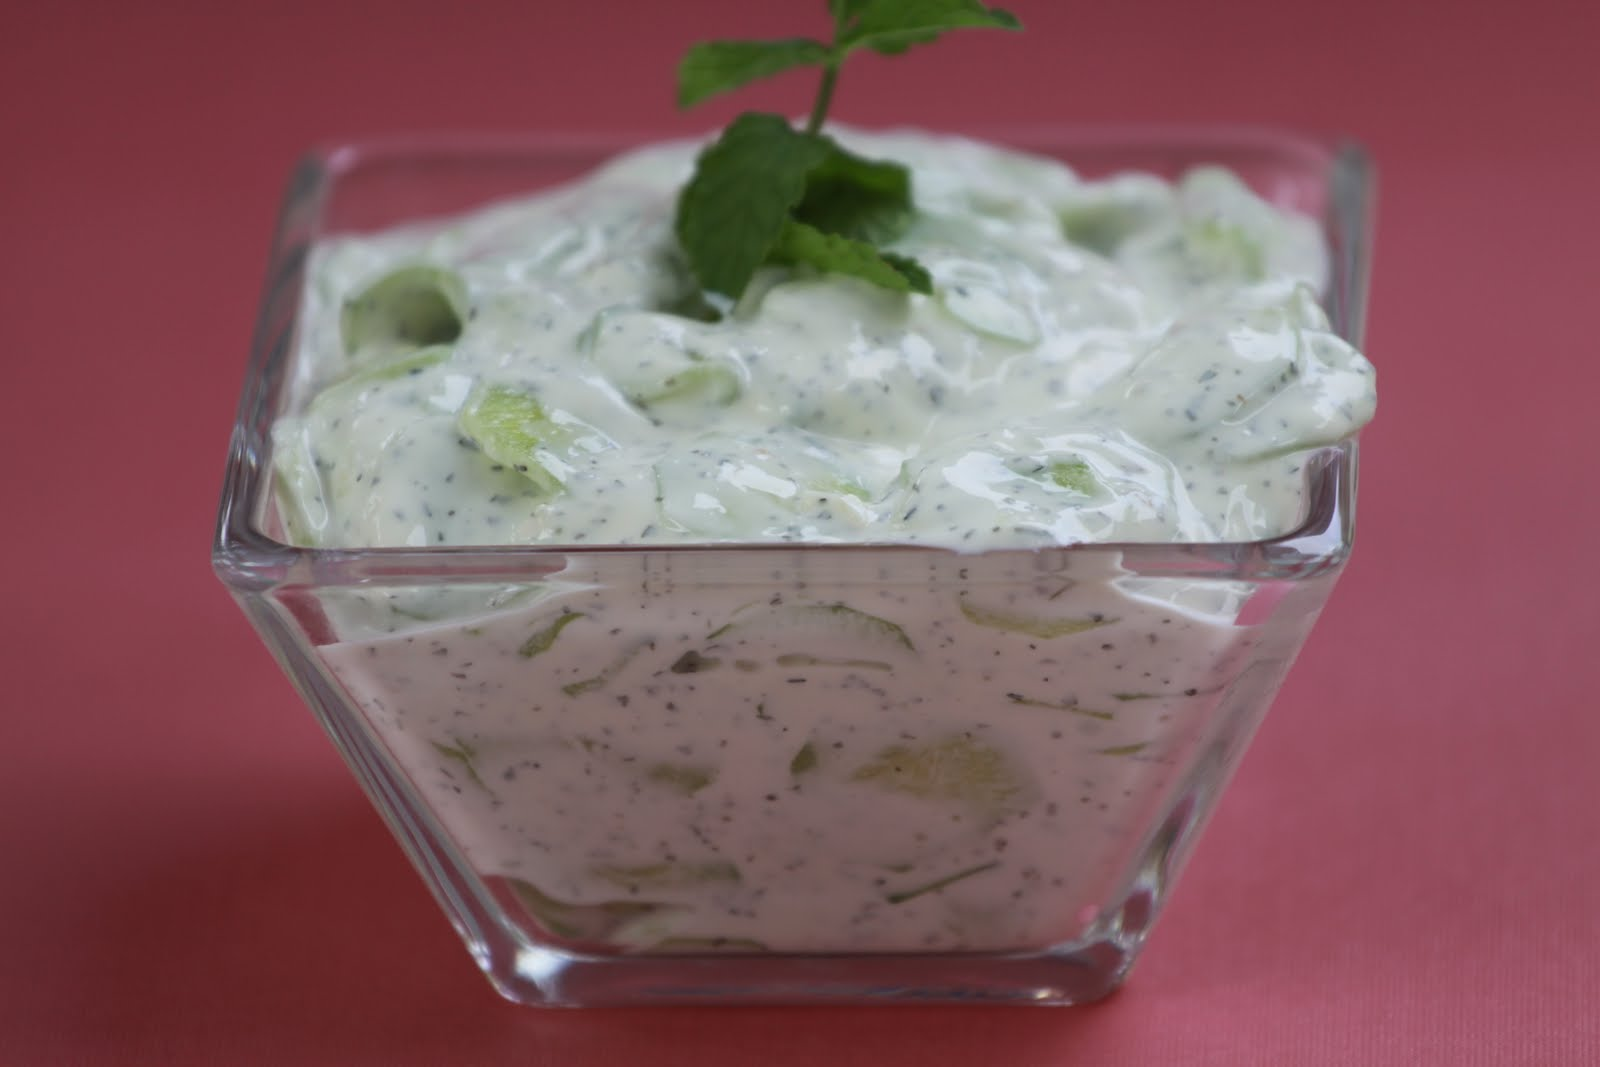 yogurt and mint cucumber salad ingredients 1 english cucumber or